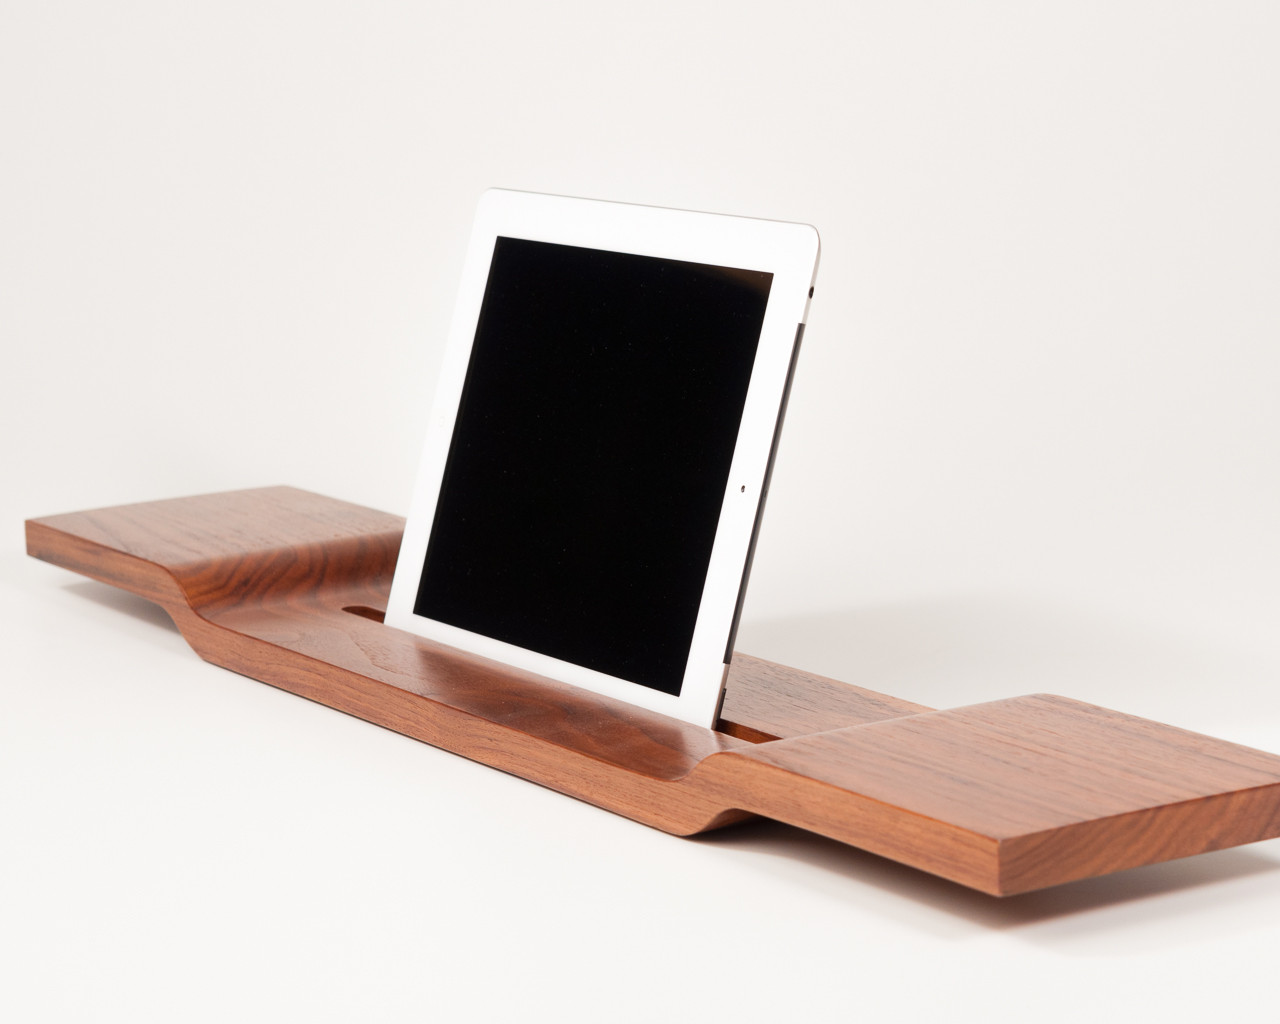 ipad und tablet halterung aus holz f r die badewanne. Black Bedroom Furniture Sets. Home Design Ideas